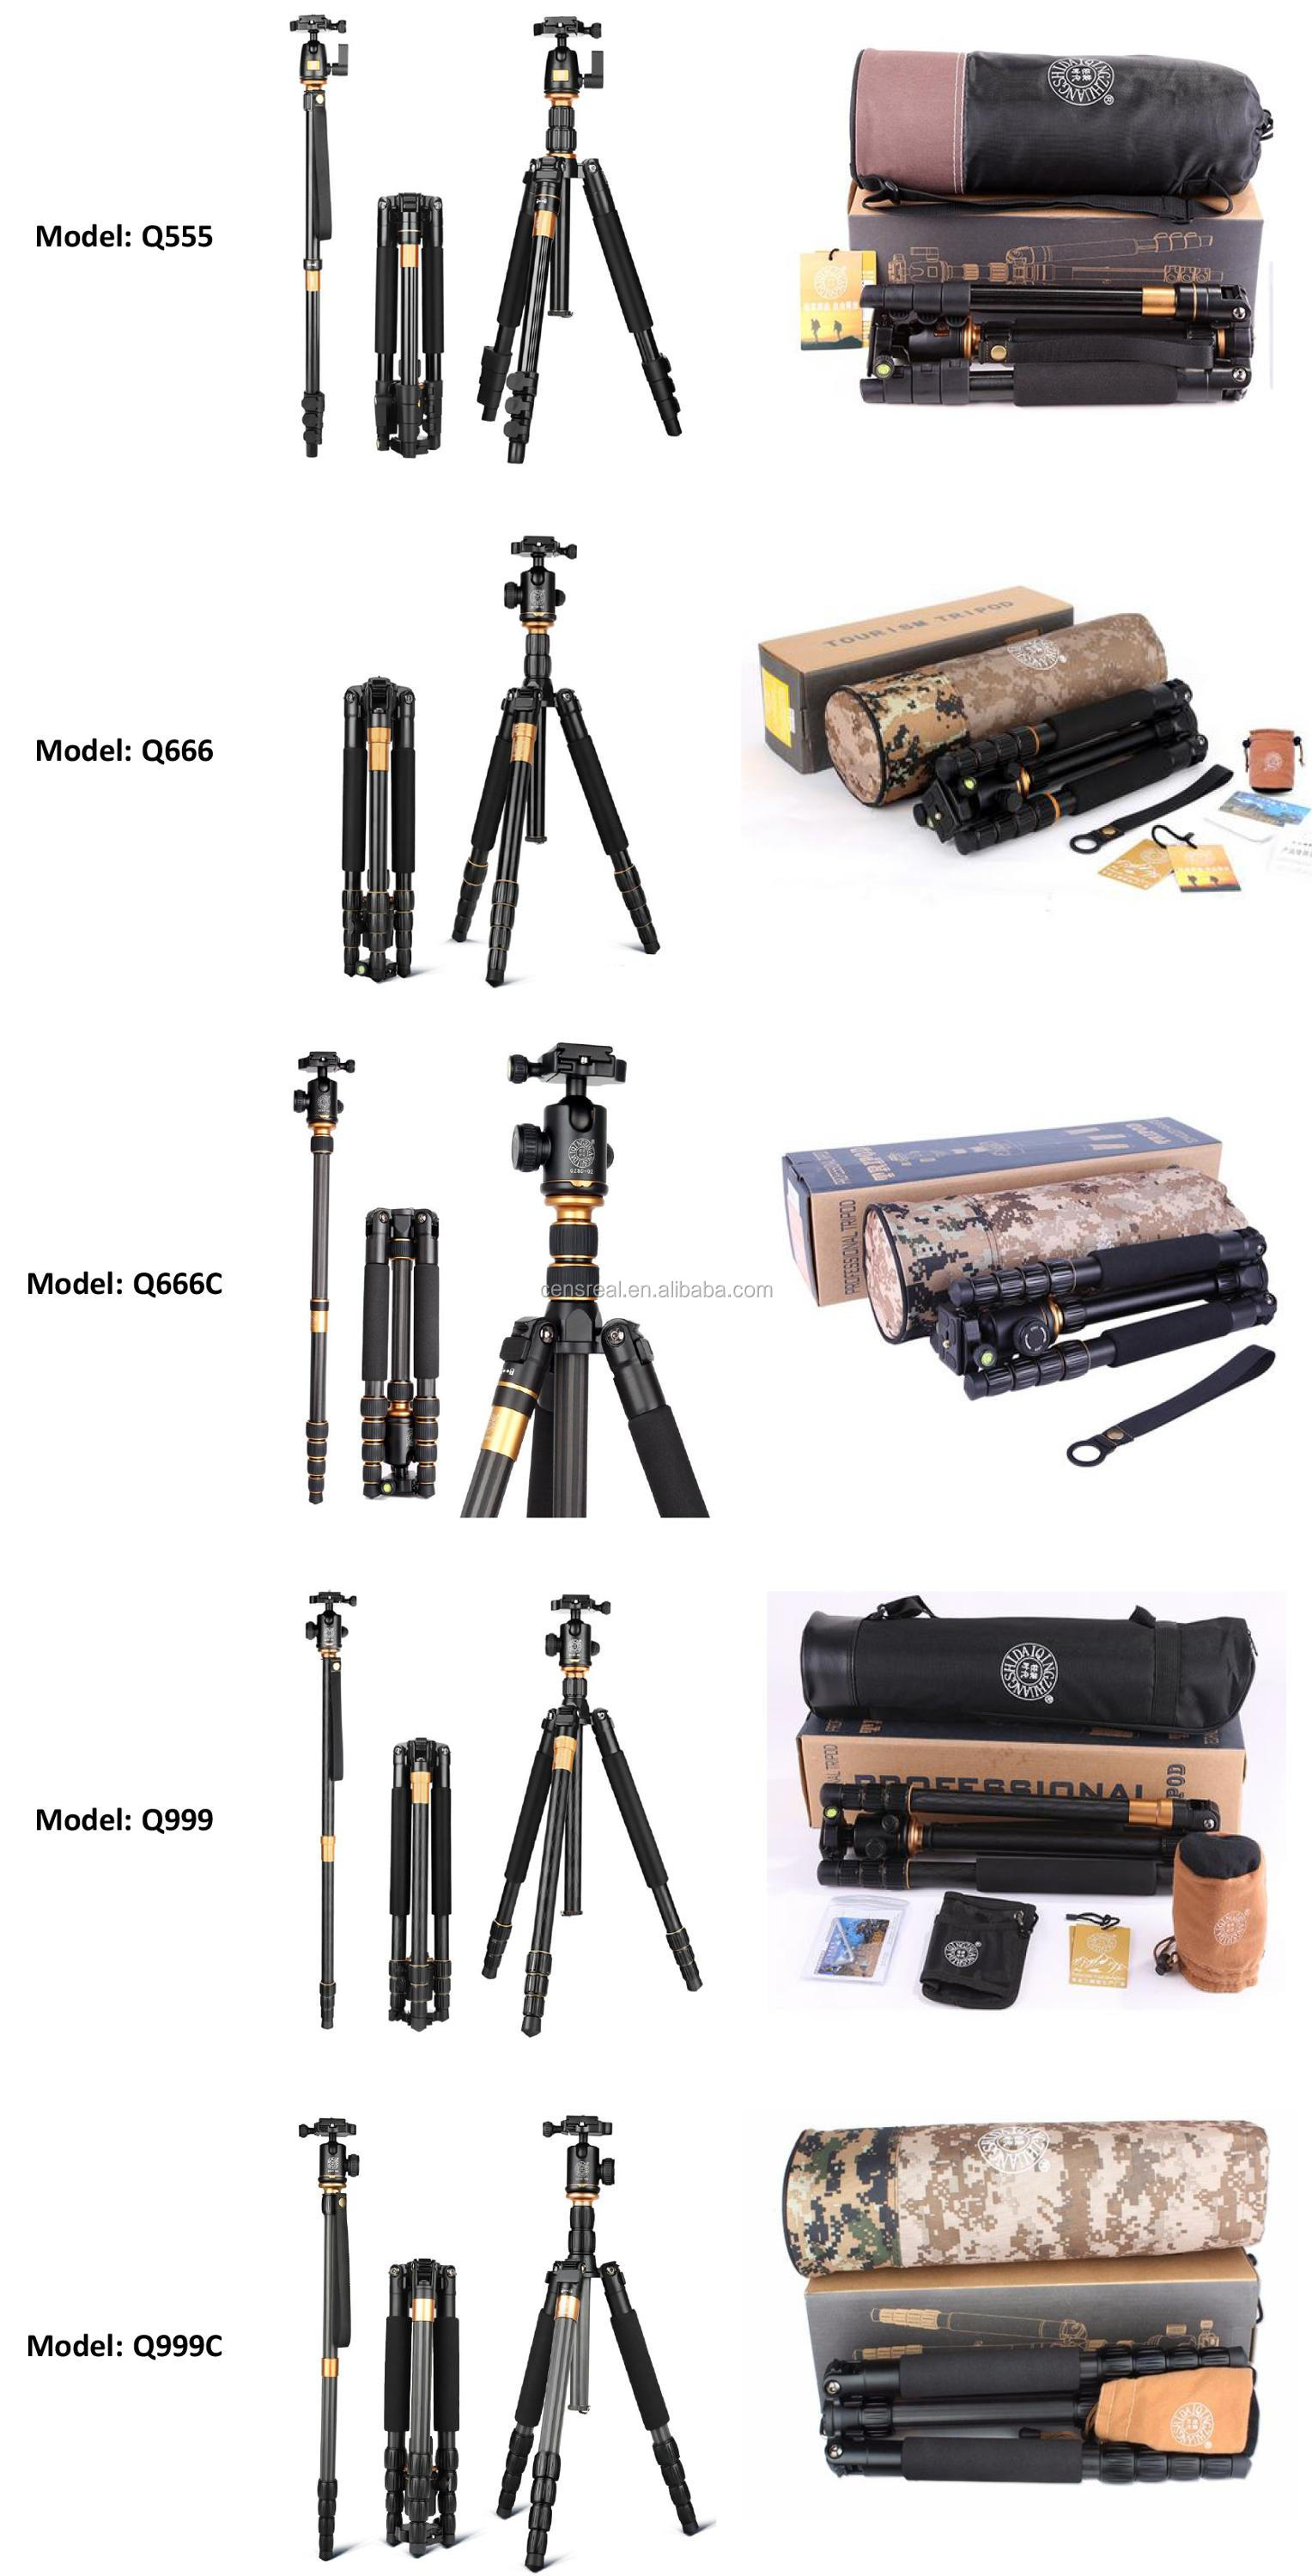 Outdoor Photography Accessory Professional Flexible Dslr Tripod For Canon  6d - Buy Dslr Tripod For Canon 6d,Flexible Dslr Tripod,Tripod For Canon